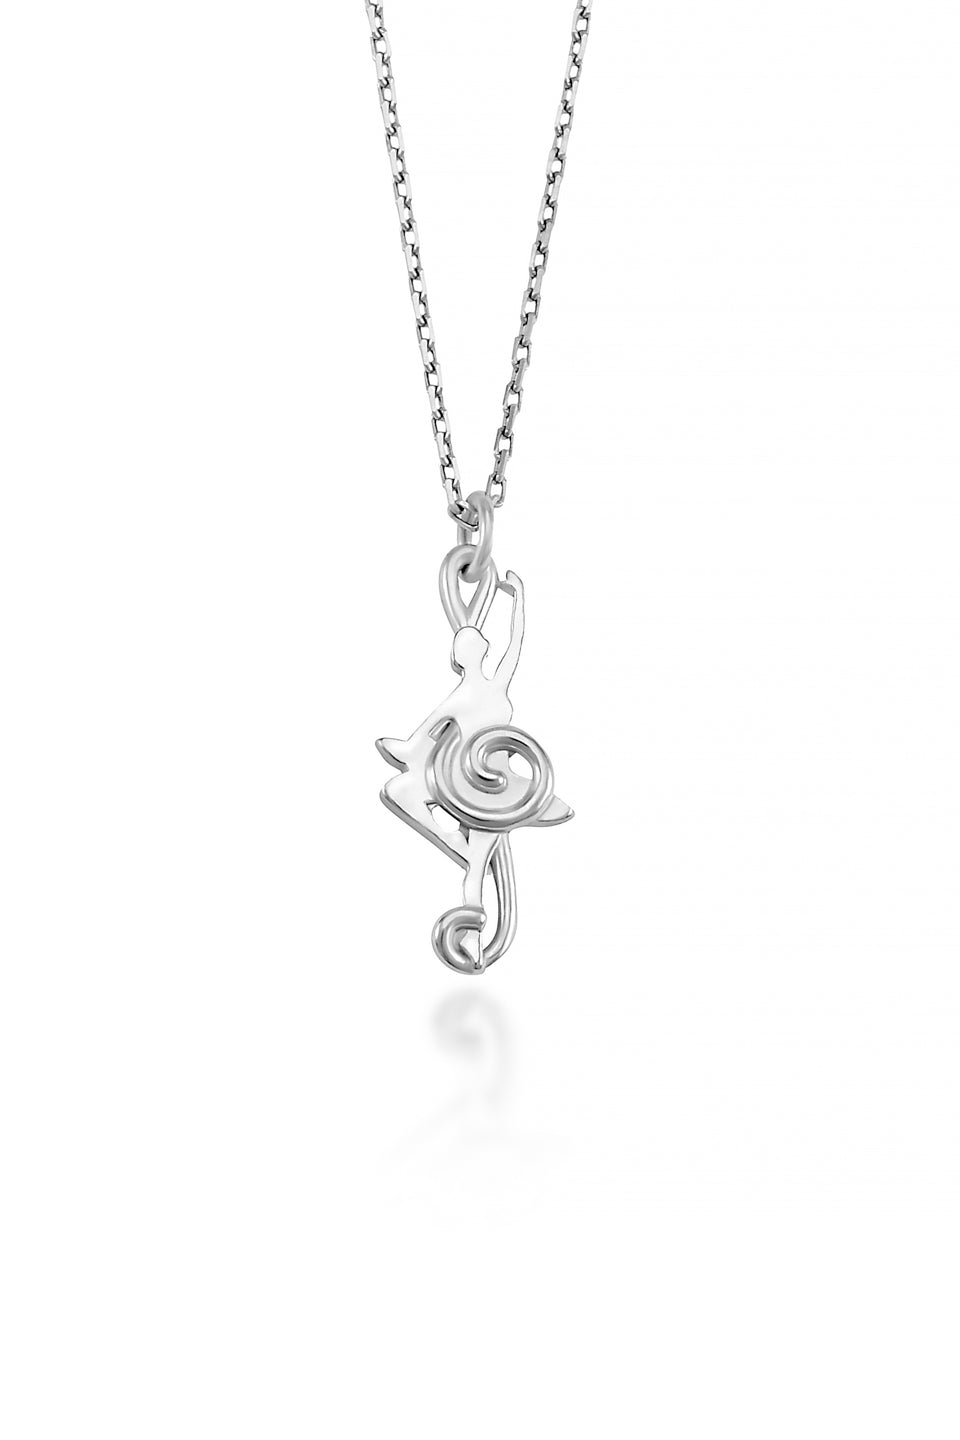 Balance Dancer Pendant ( 10 Karat white gold)- A ballerina is inset among the smooth curves of a treble clef in this unique piece of dancer jewelry.